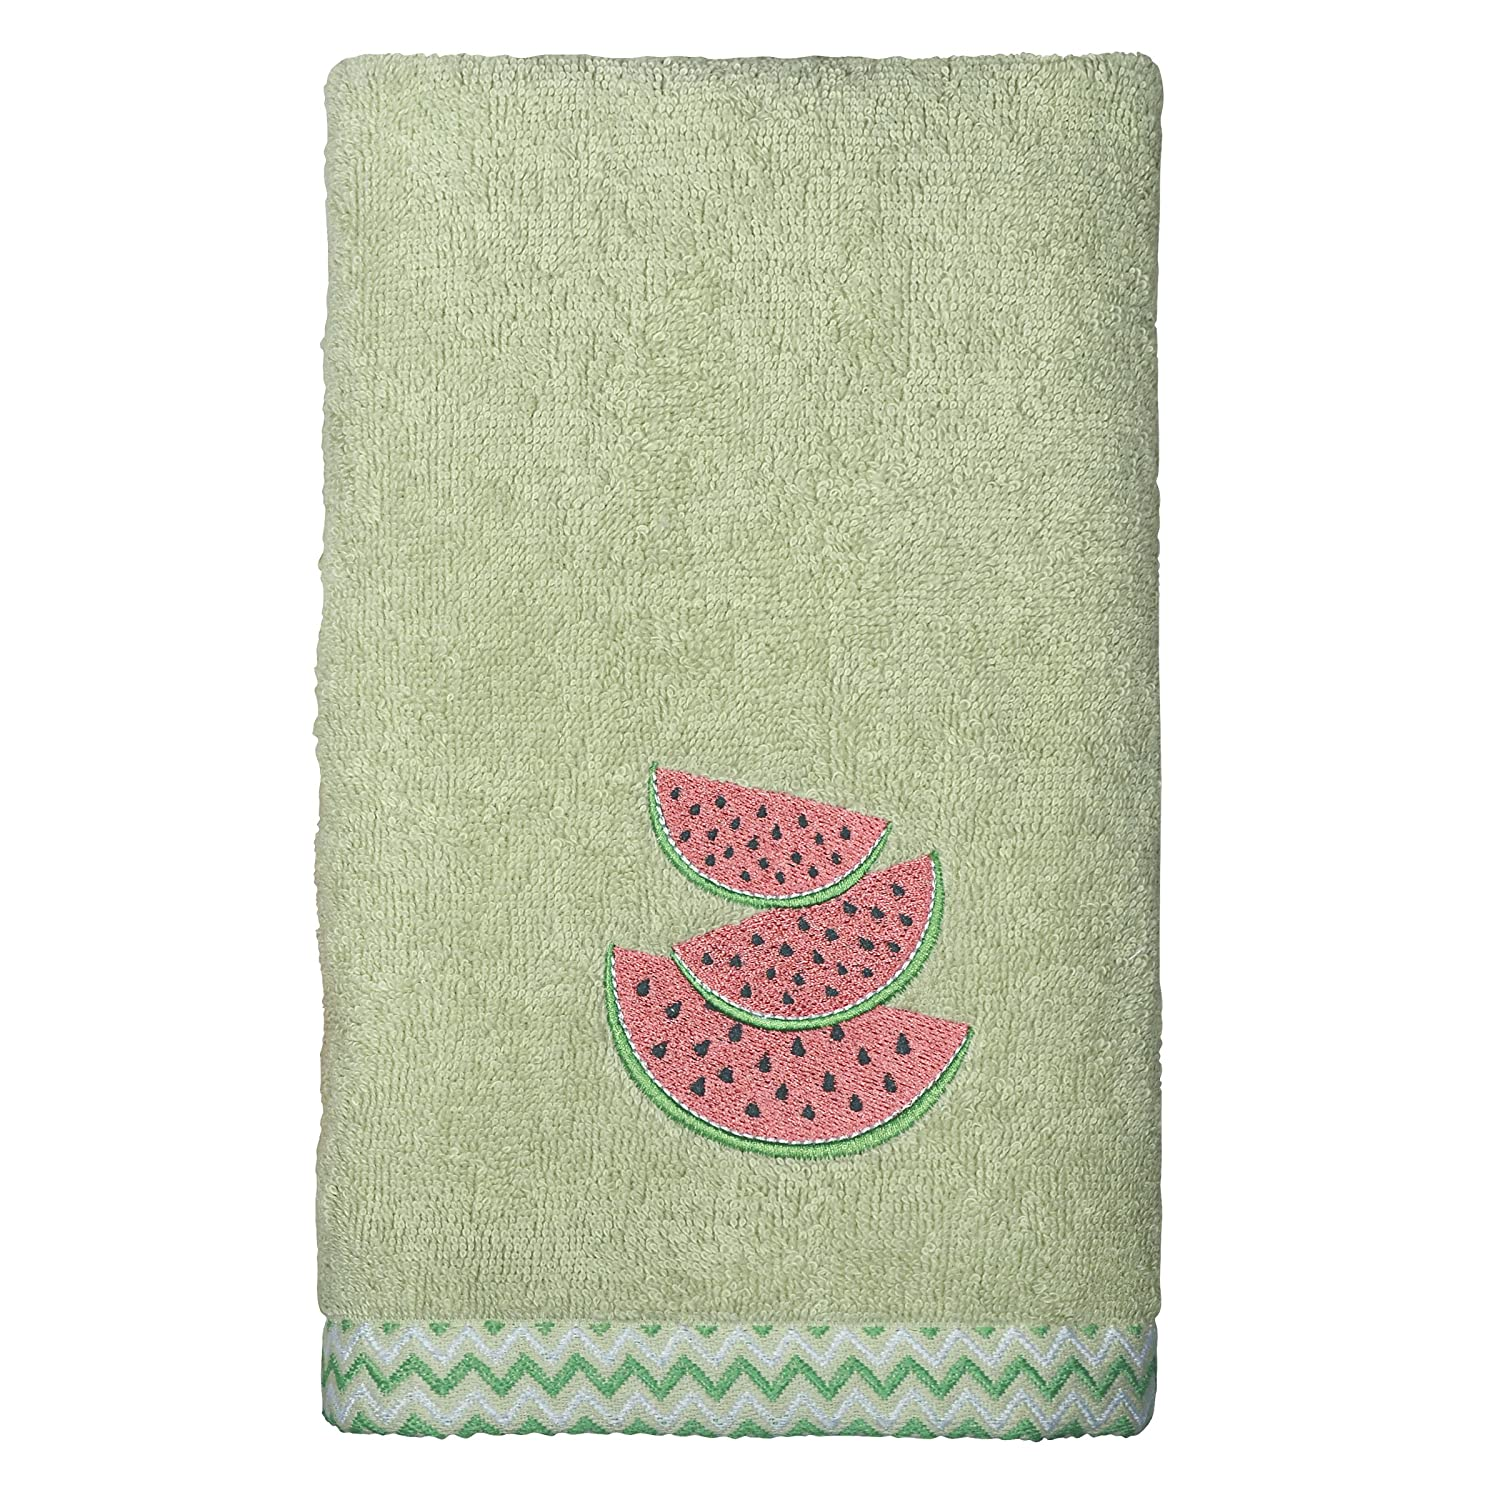 Peri Home Watermelon Embroidered Hand Towel Green 15x 26 100Percent Cotton Bordered 15x 26 CHF Industries 3T91470HGR